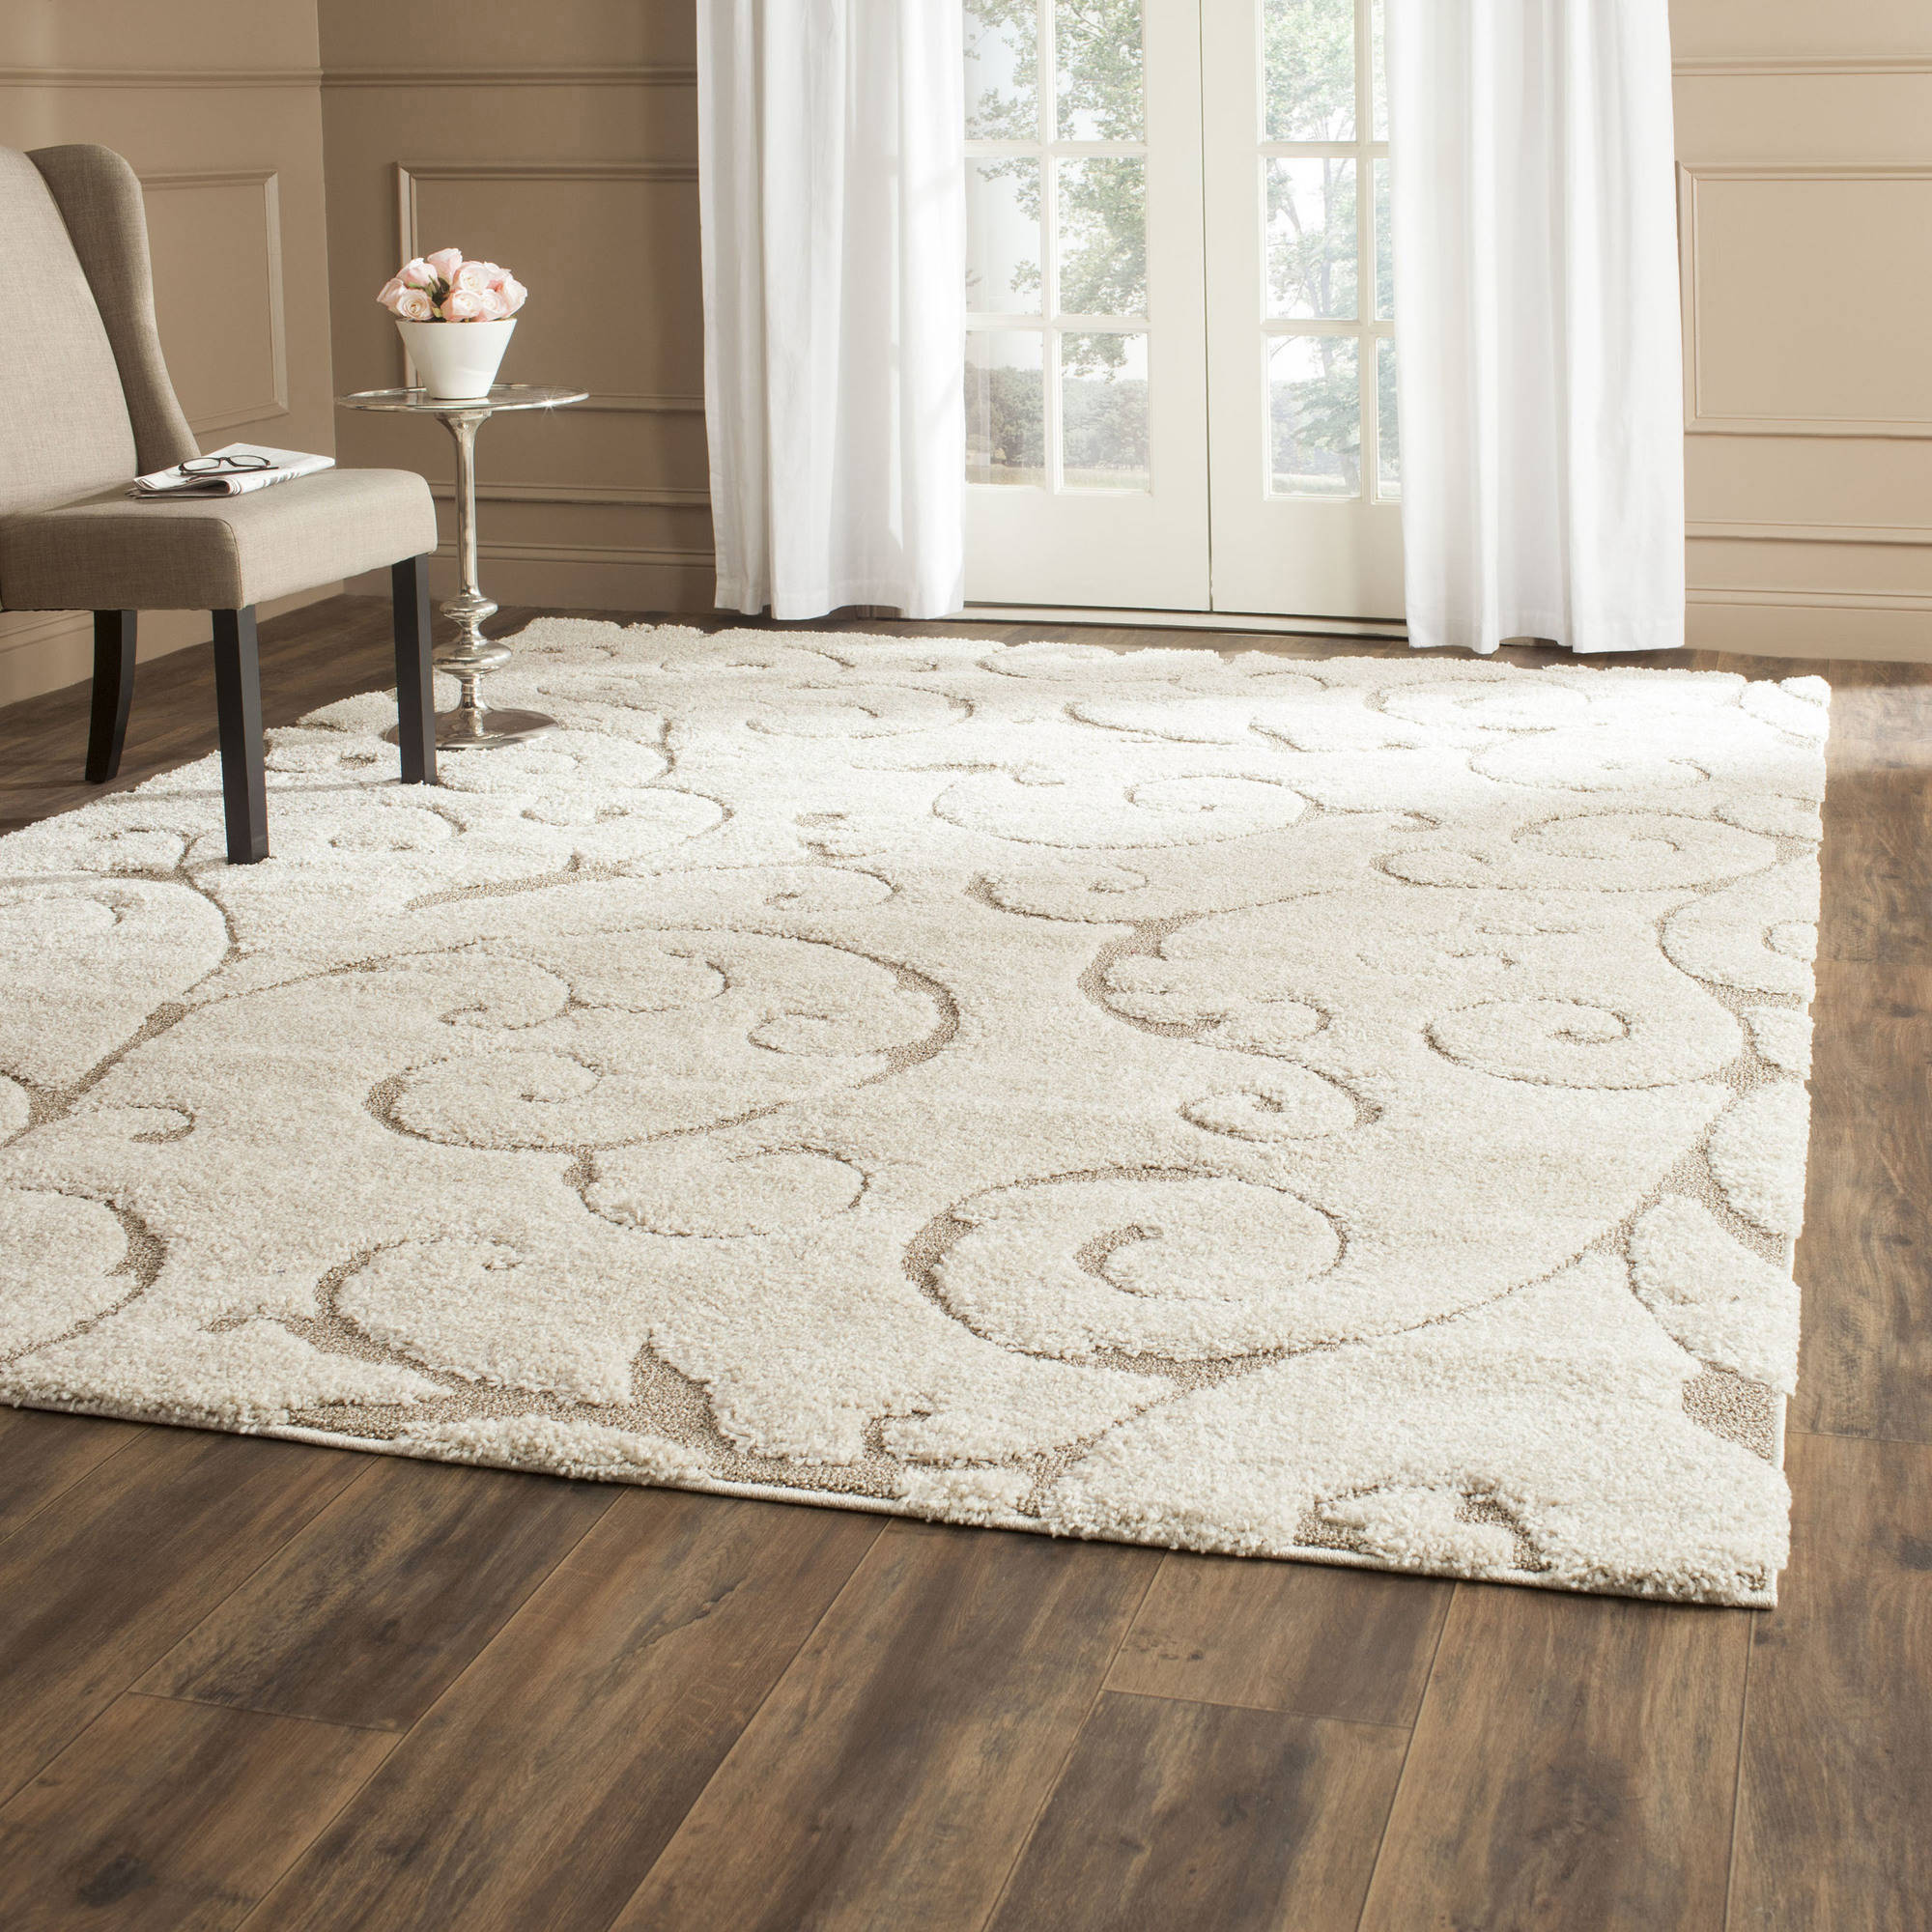 Safavieh Florida Shag Iron Gate Rectangle Pile Area Rug